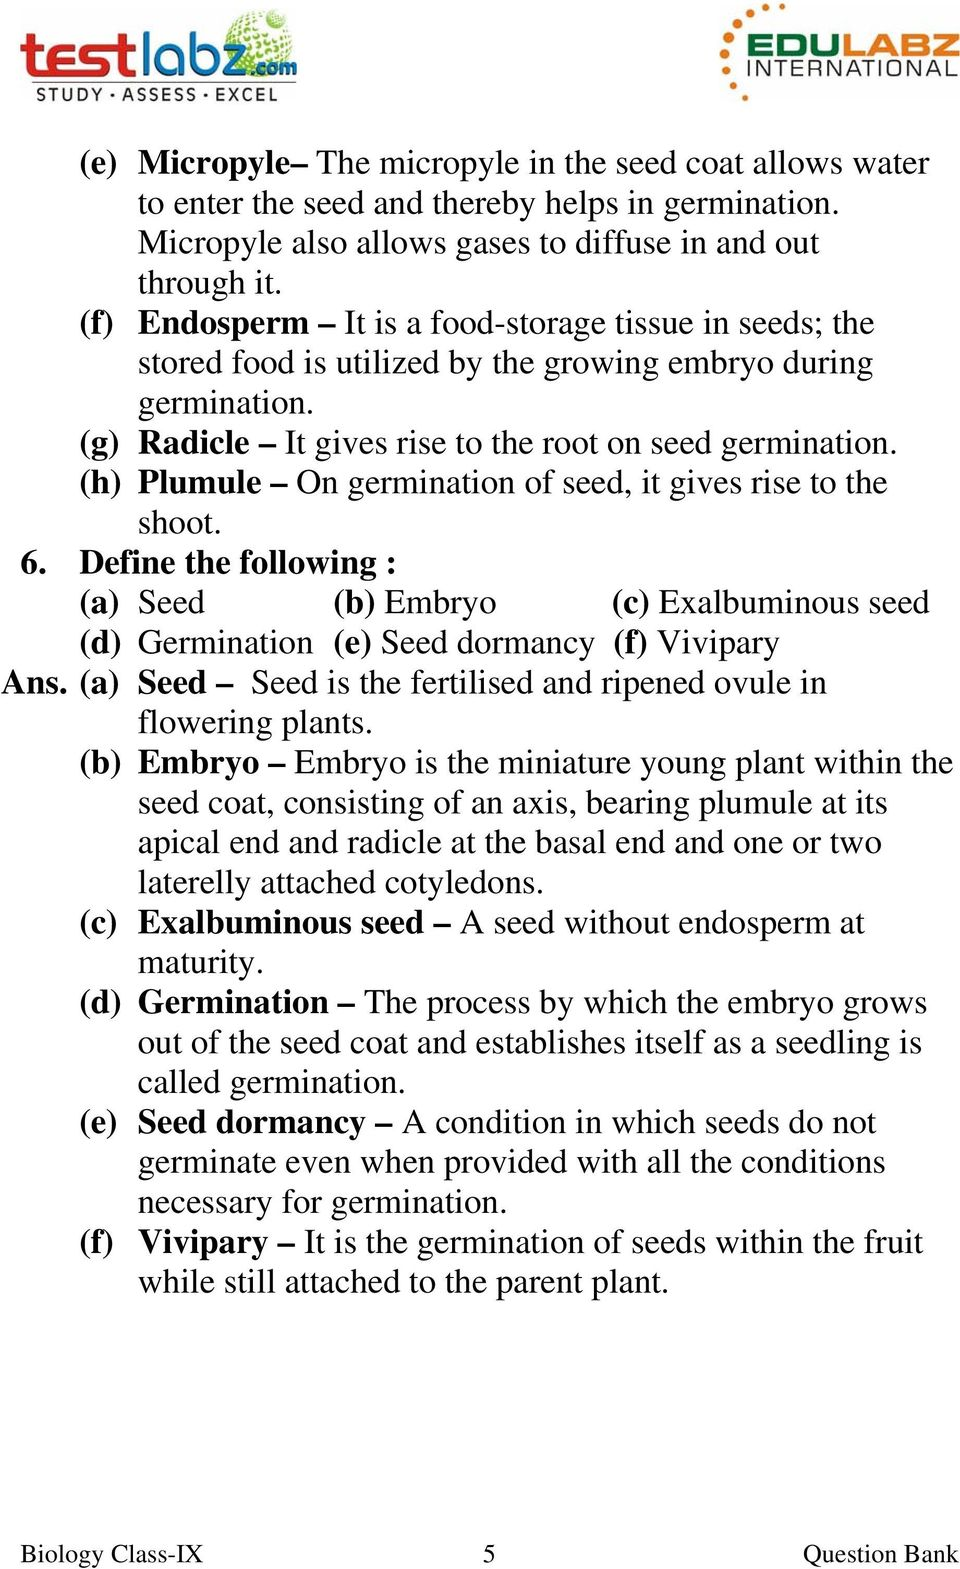 (h) Plumule On germination of seed, it gives rise to the shoot. 6. Define the following : (a) Seed (b) Embryo (c) Exalbuminous seed (d) Germination (e) Seed dormancy (f) Vivipary Ans.